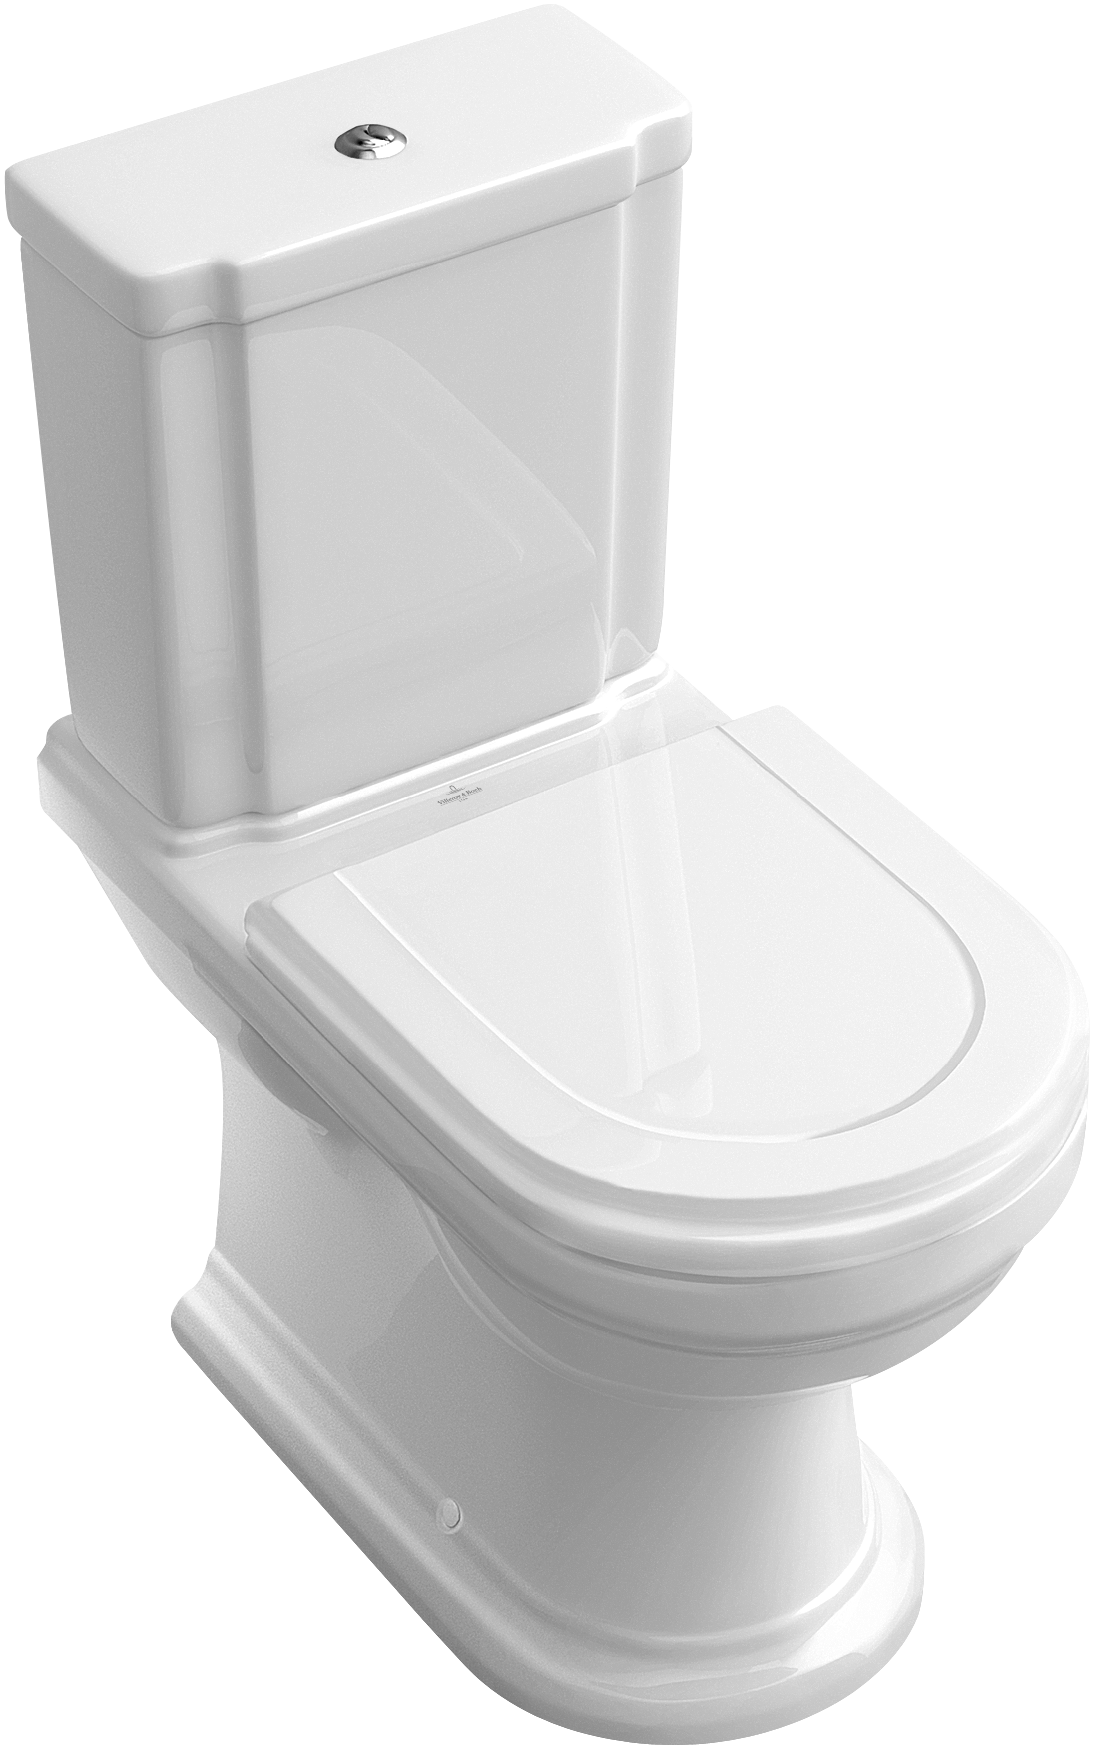 Toilet Png Image Purepng Free Transparent Cc0 Png Image Library